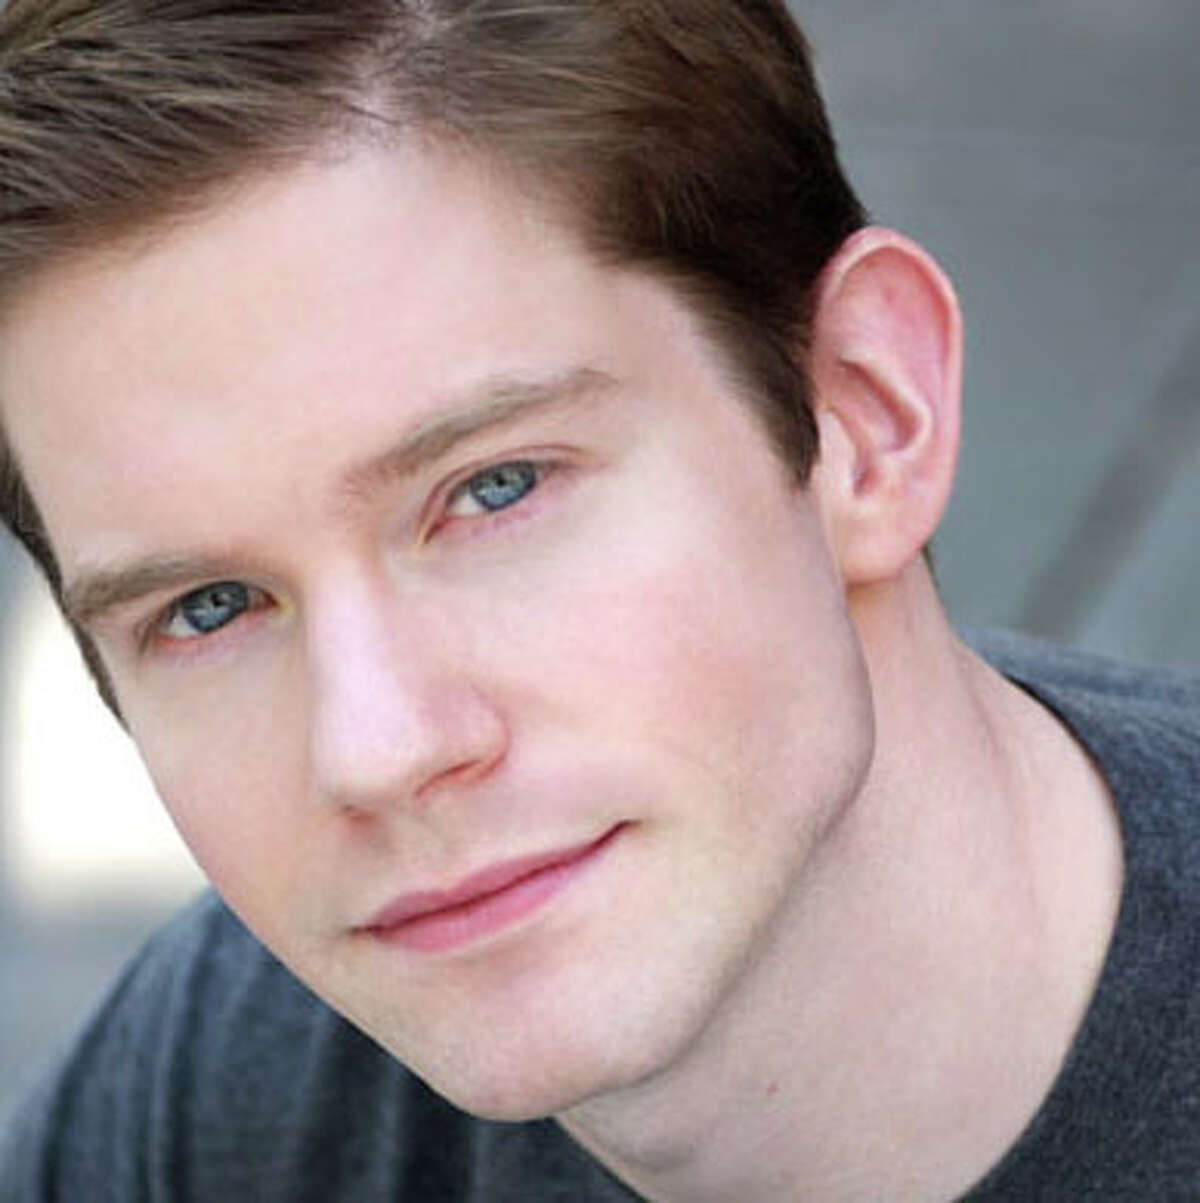 Rory O'Malley (King George) O'Malley appeared in Hamilton on Broadway, and received Drama Desk nominations for his work in